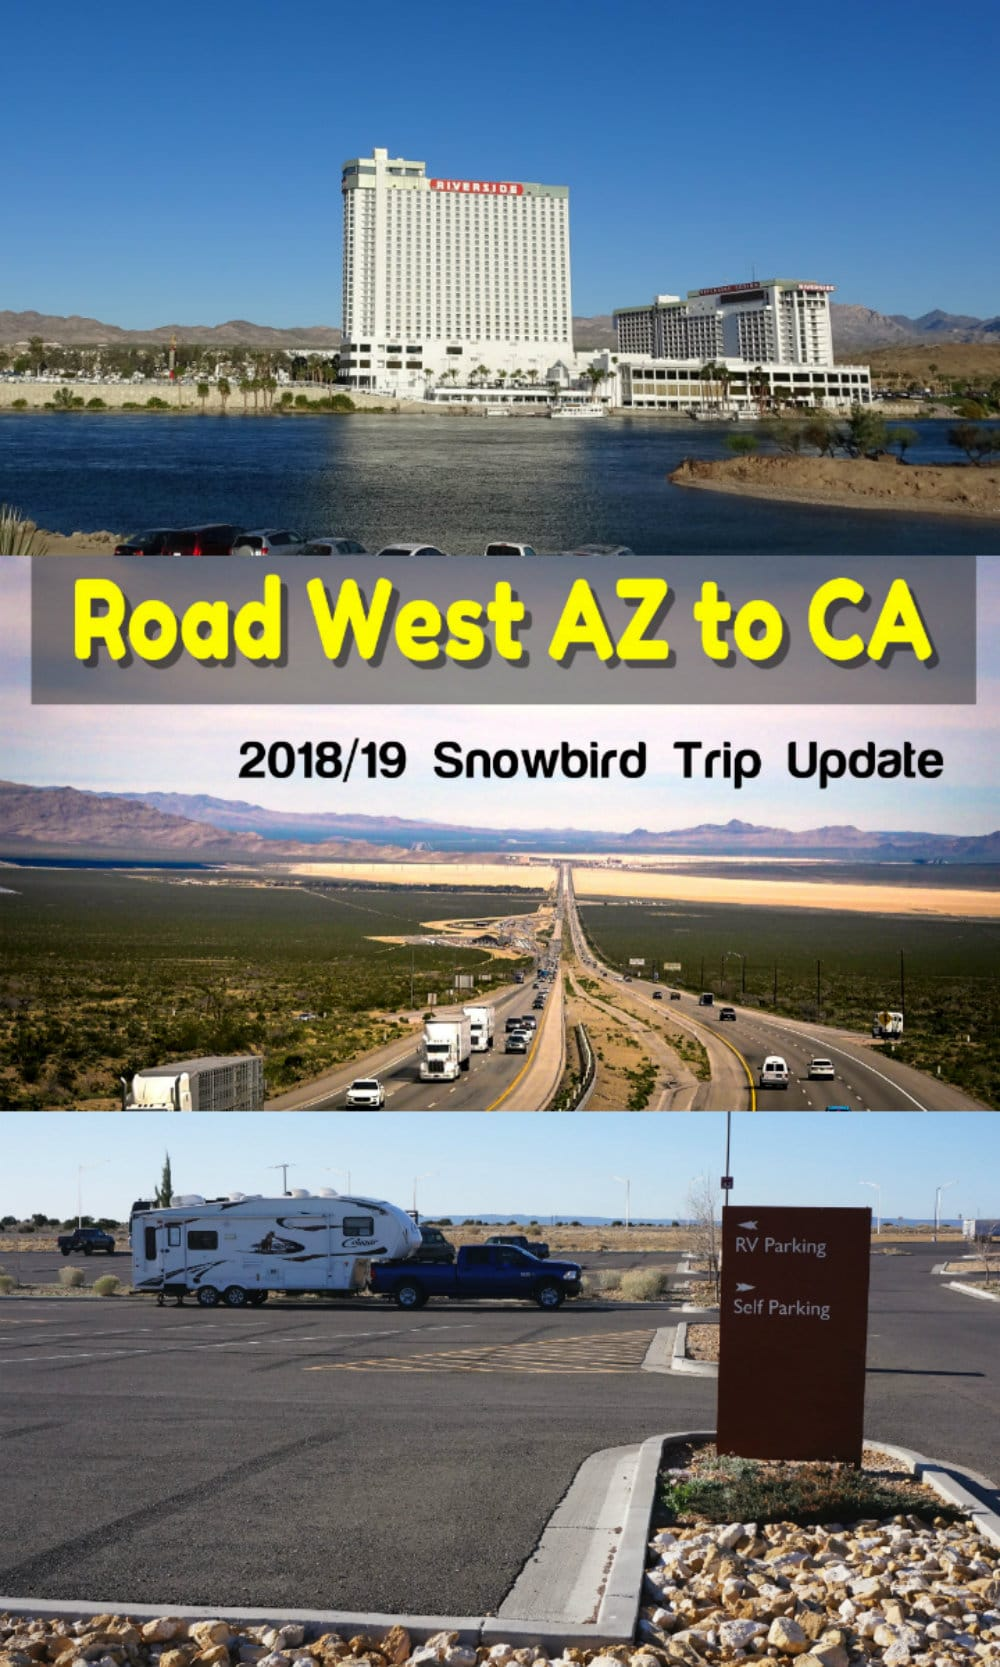 Traveling West across Arizona into California (Snowbird Trip Update) - https://www.loveyourrv.com/traveling-west-across-arizona-into-california-snowbird-trip-update/